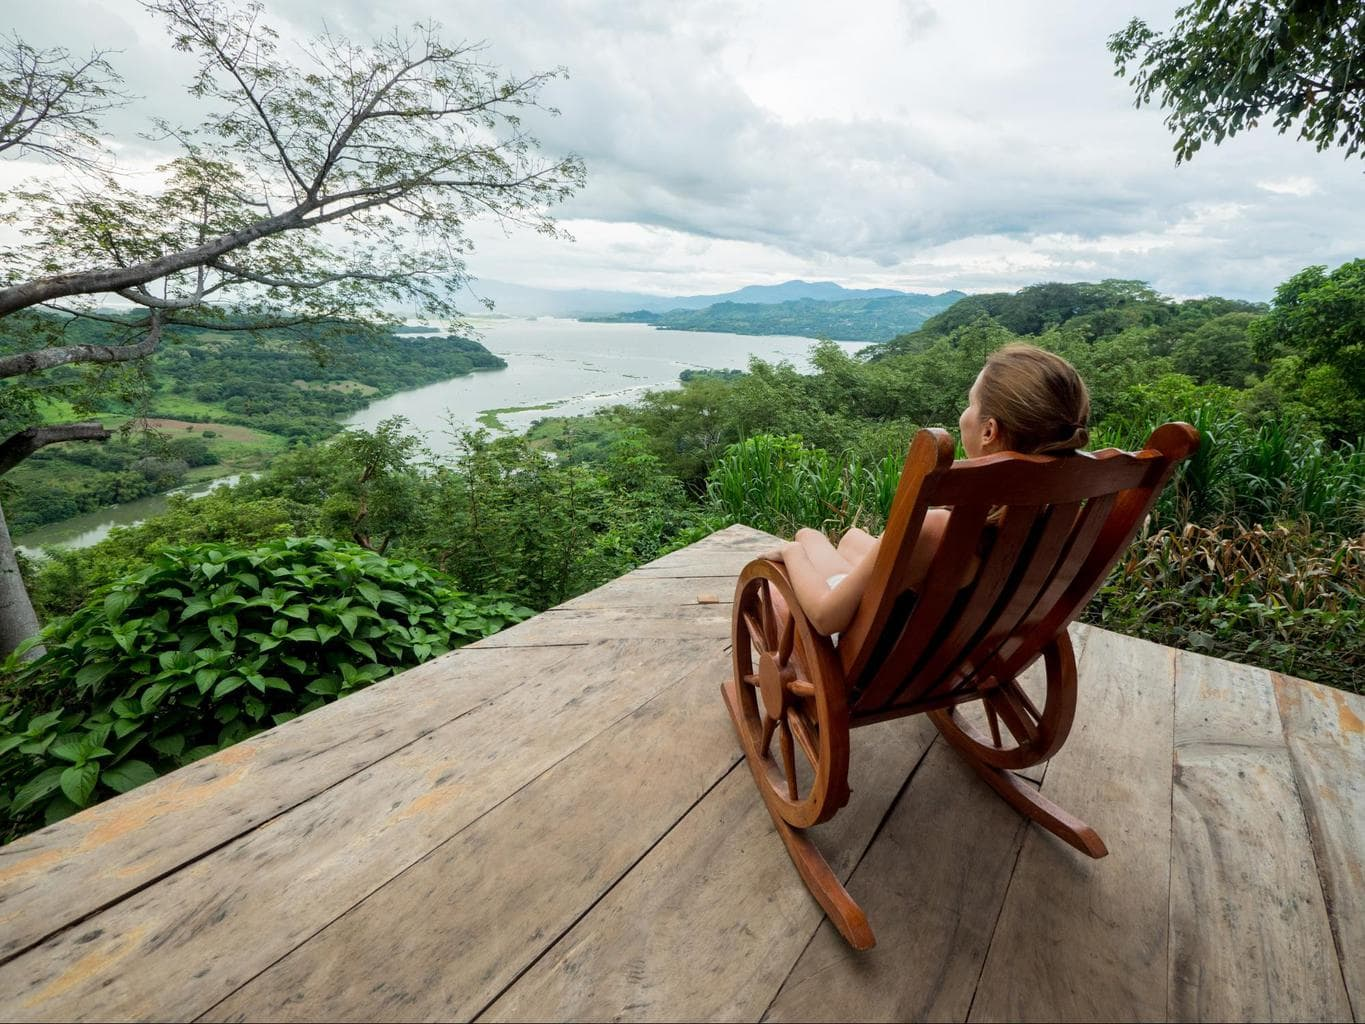 Rocking chair view of Suchitoto lake